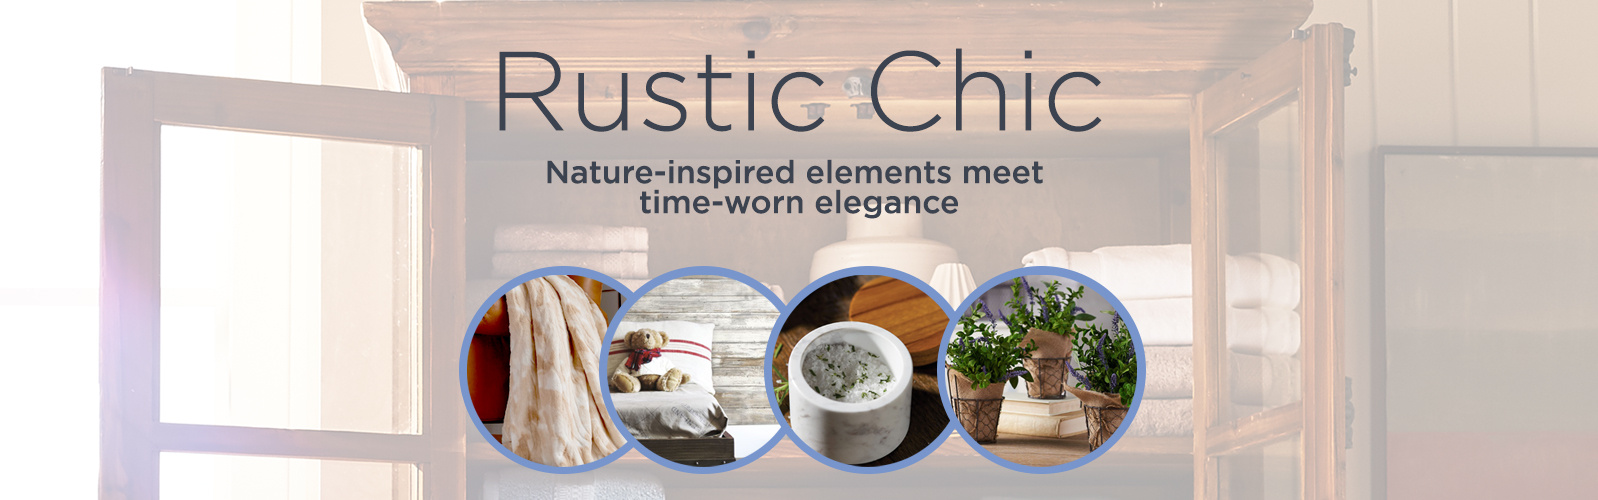 Rustic Chic  Nature-inspired elements meet time-worn elegance